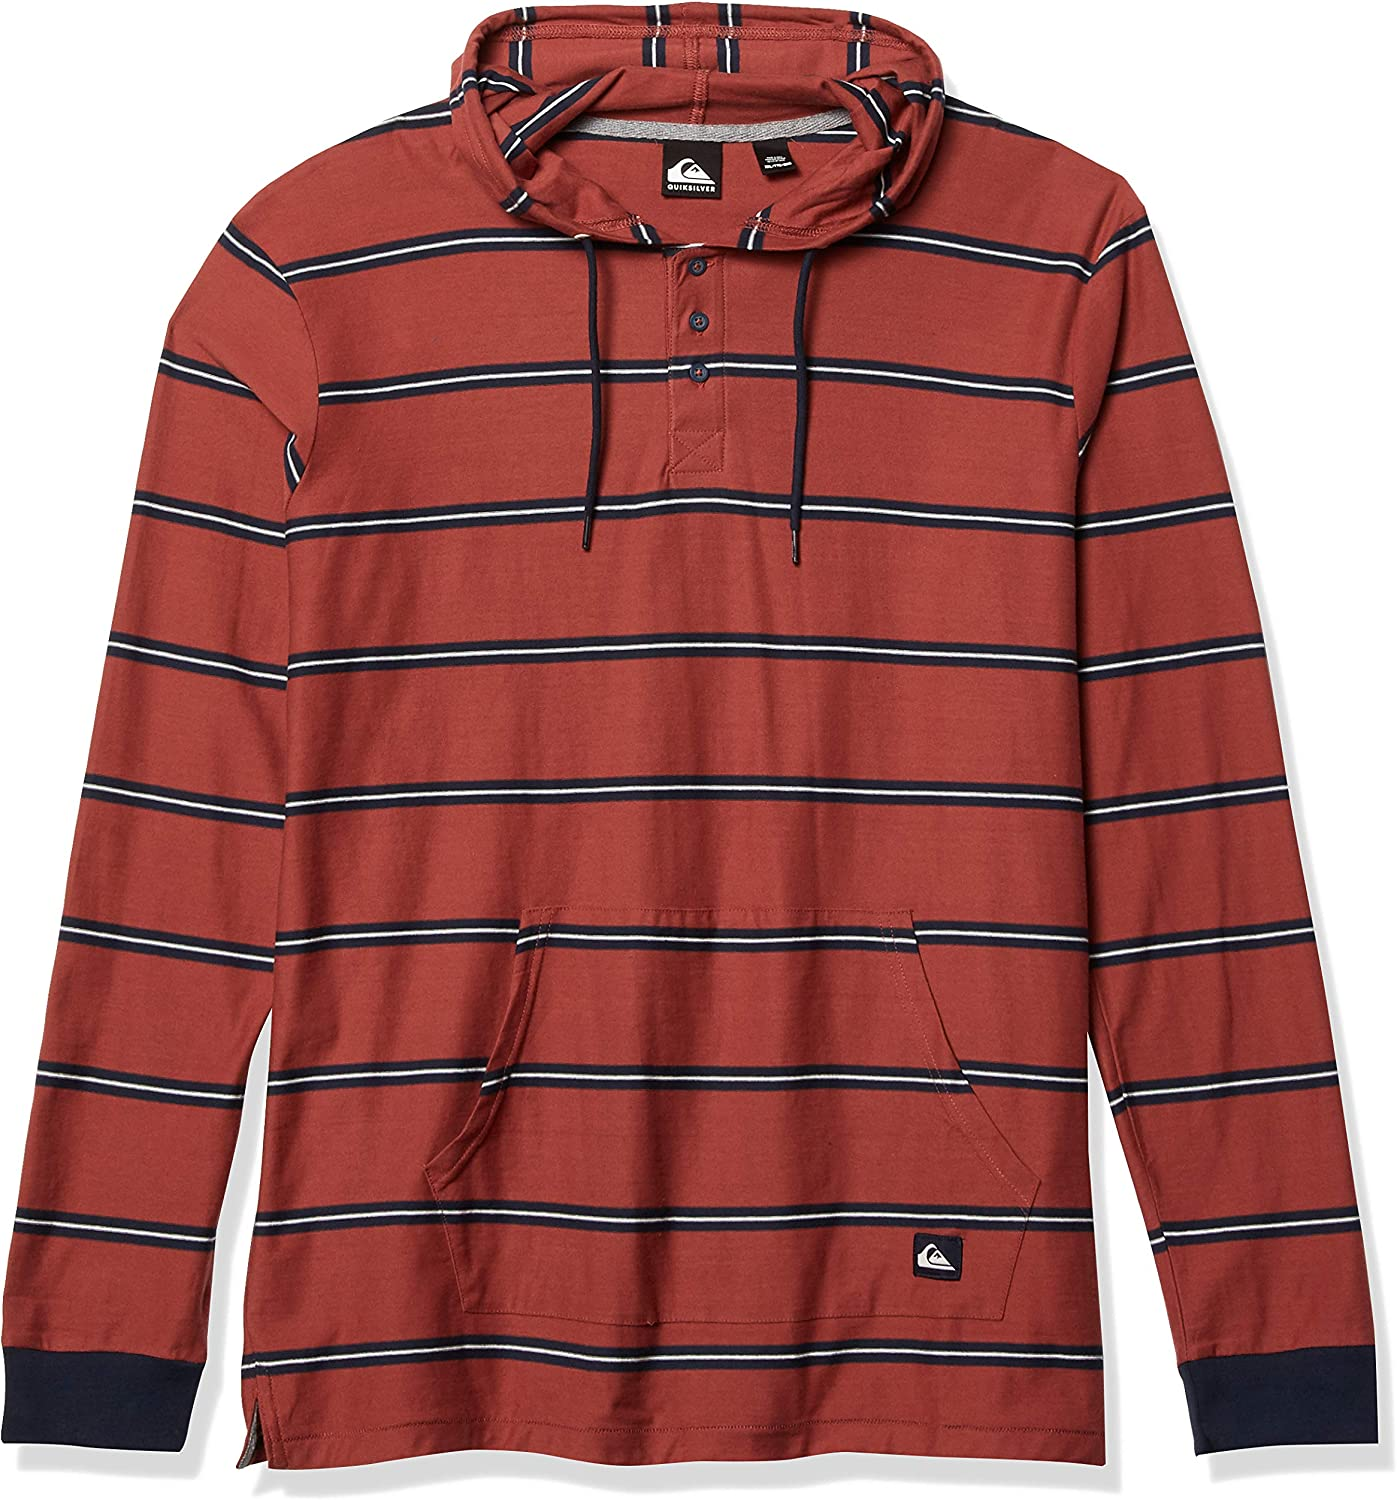 Quiksilver Men's Surfset Hoody